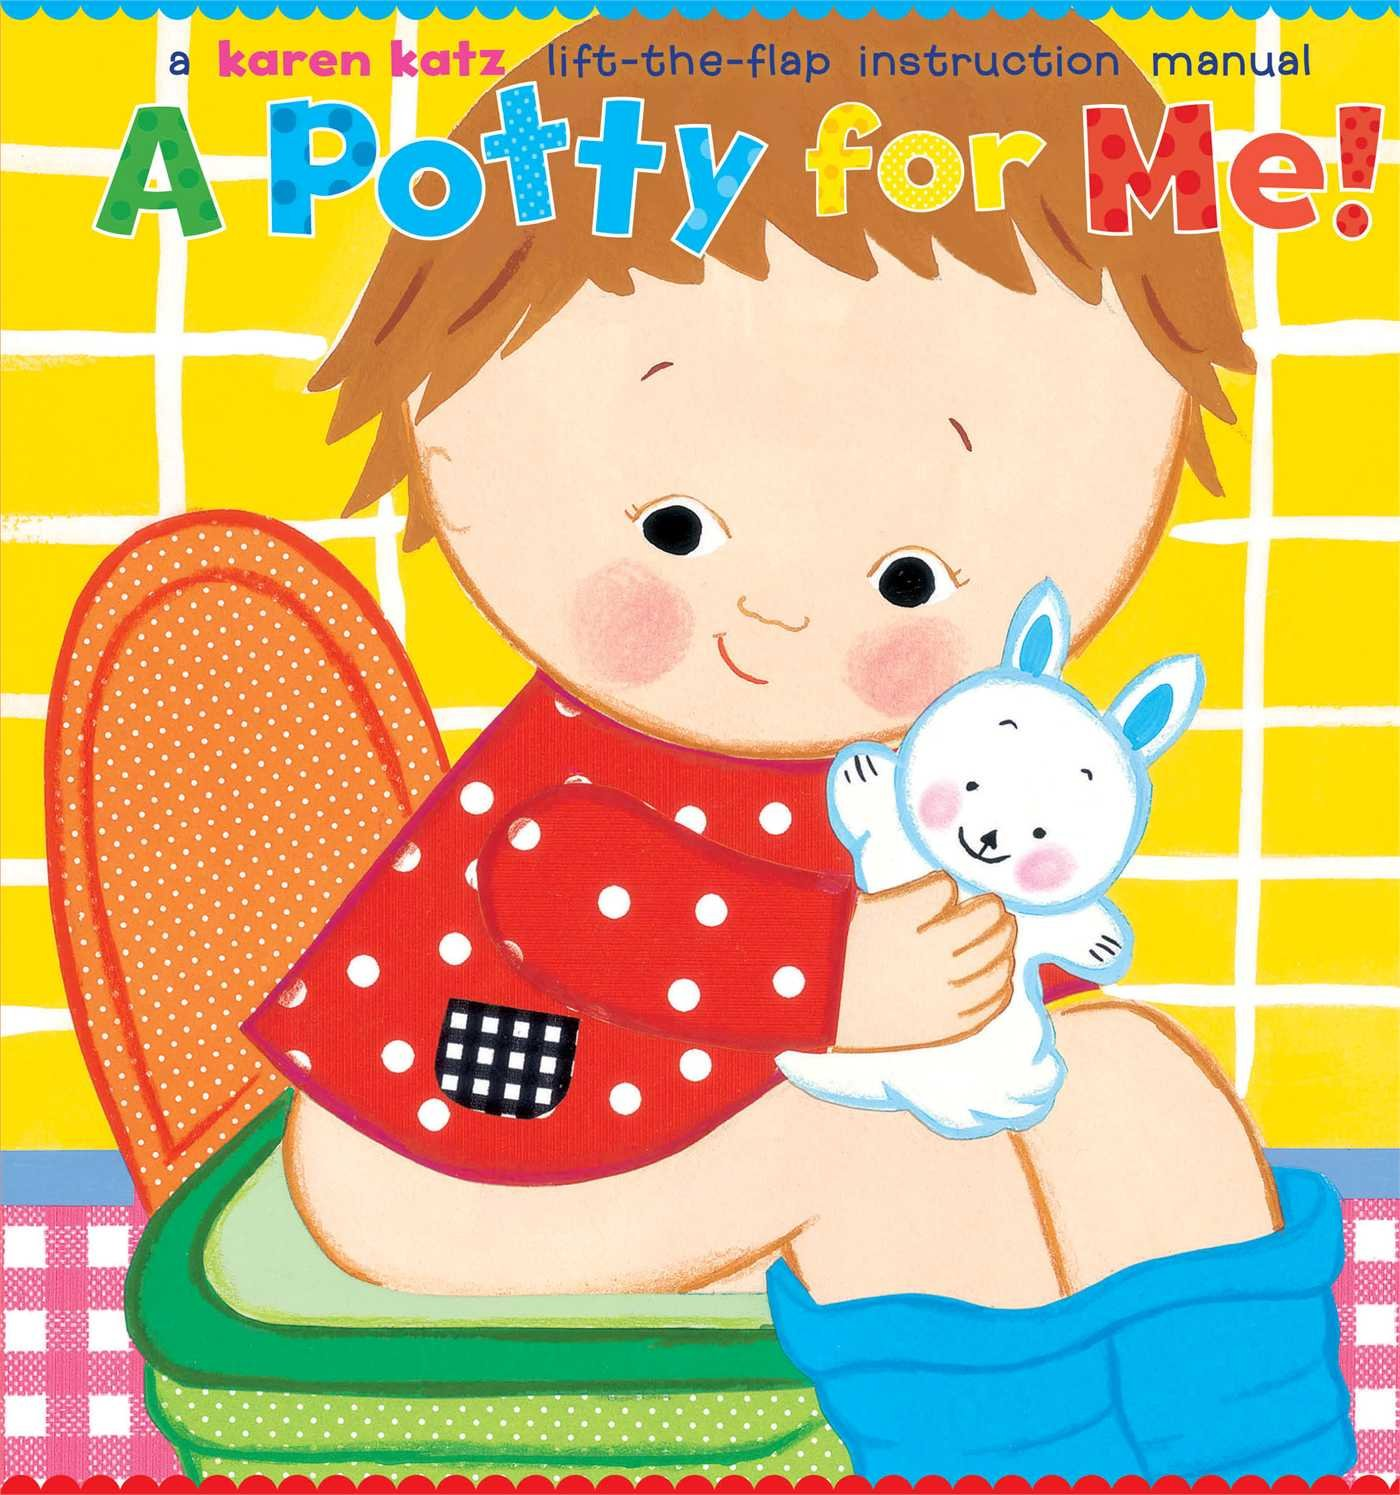 A Potty for Me! by Karen Katz